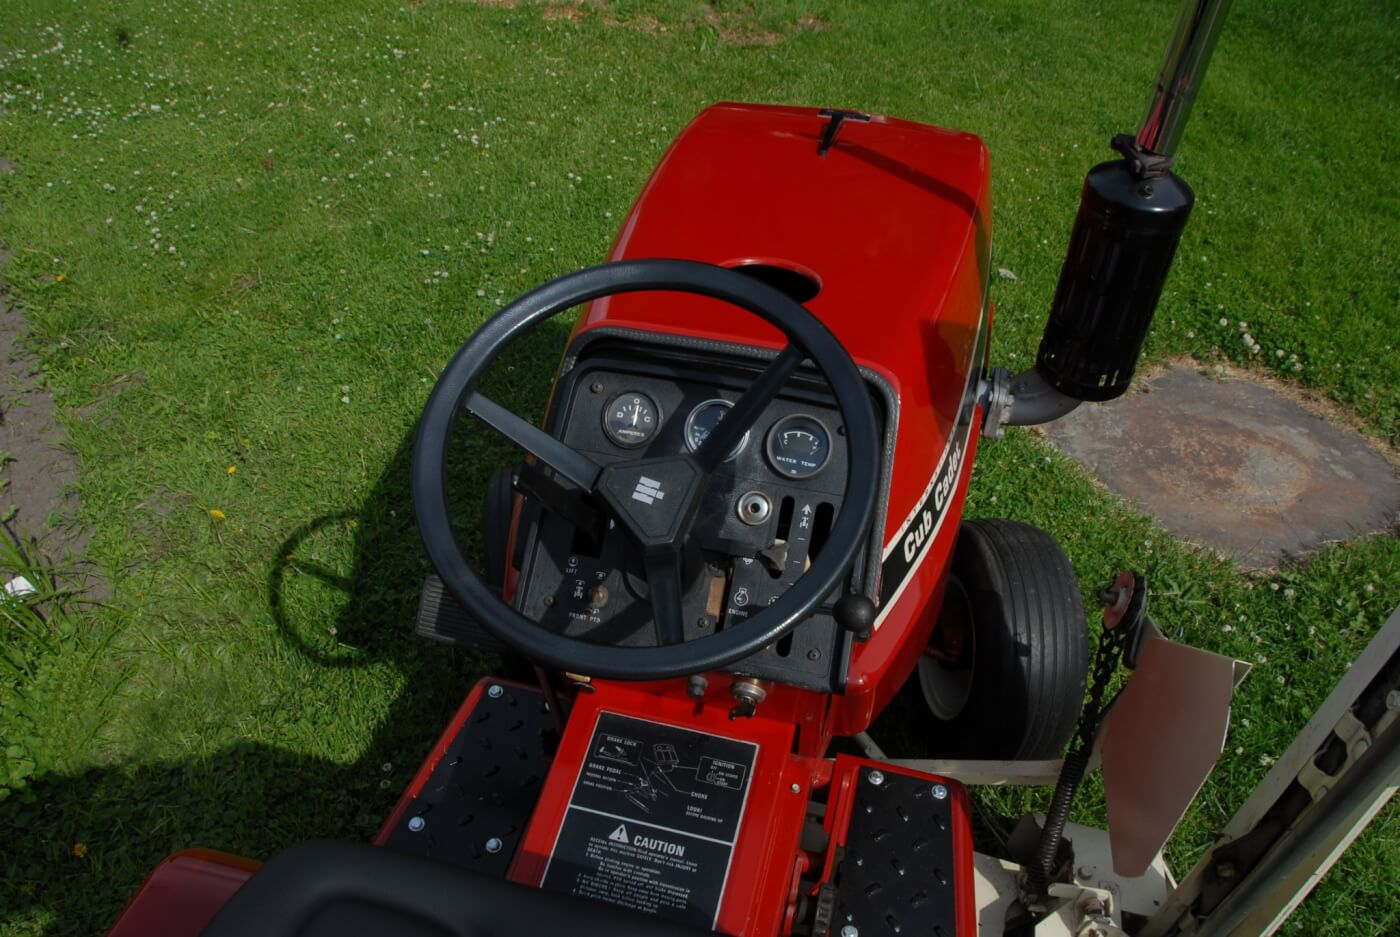 The 782D differs from most lawn tractors its size in having water temp and oil pressure gauges as well as a radiator and a fan. The Kubota diesel has a glow system, albeit an old school one, with a fourth glow plug mounted in the dash and observed through a sight hole just to the right of the steering column. The other controls are largely the same as the other 782s, and the fuel tank is located under the seat.